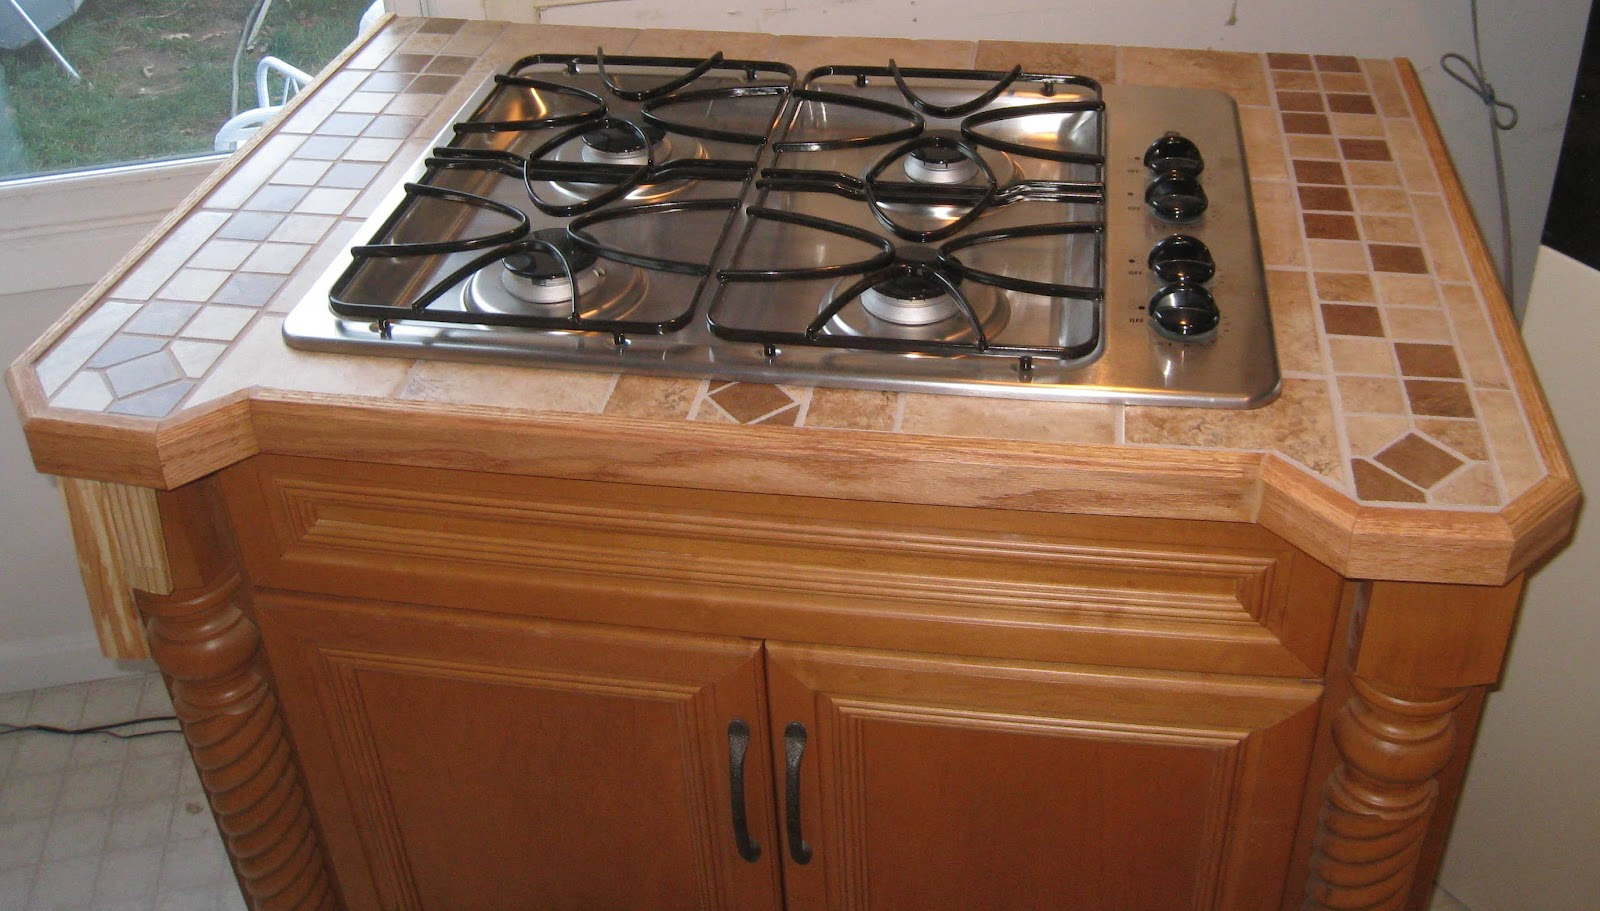 ... countertop. He installed our new gas stove in one of our new cabinets